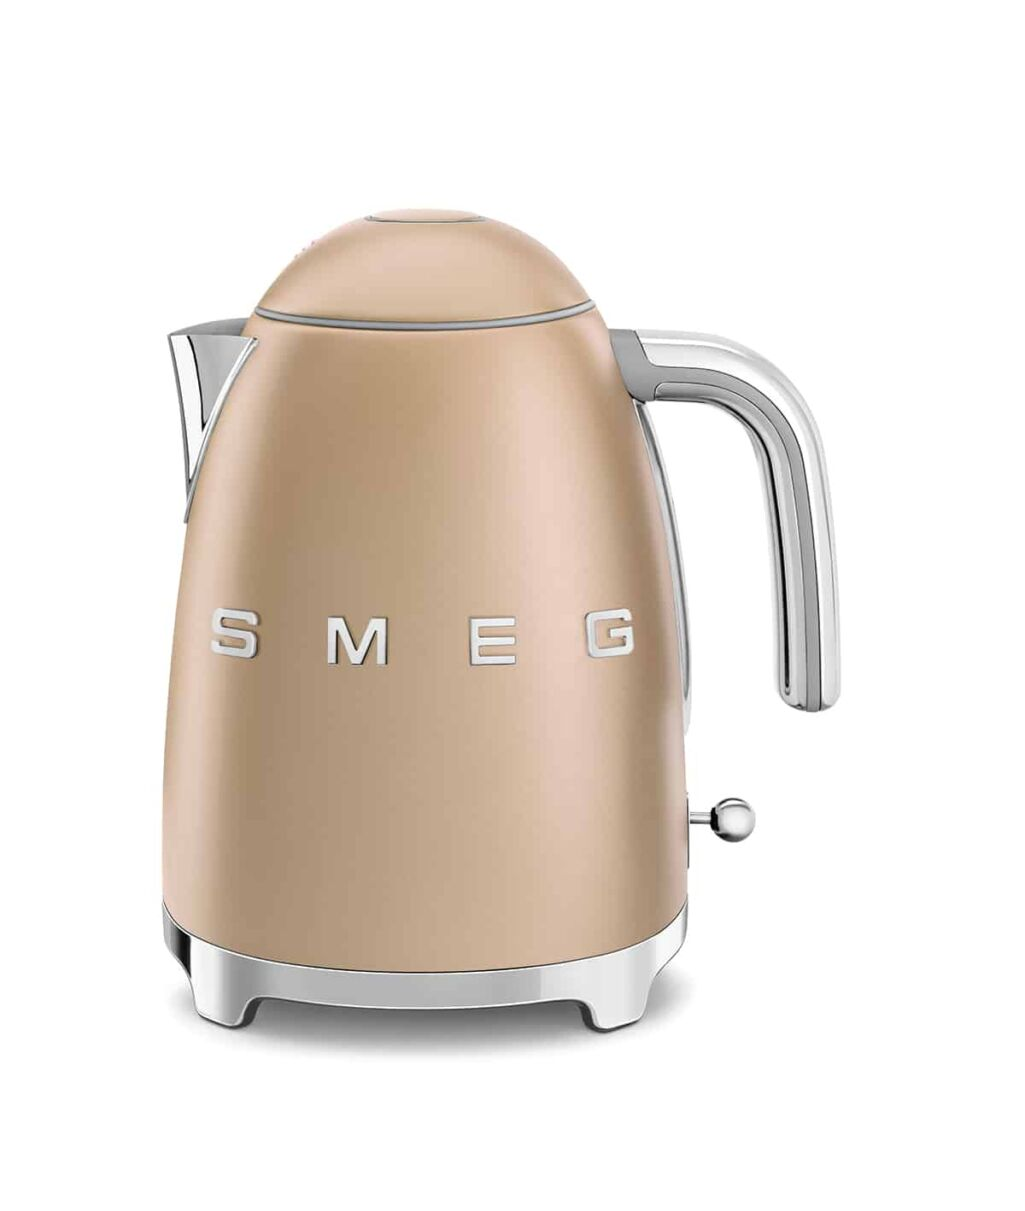 Smeg - Electric Kettle